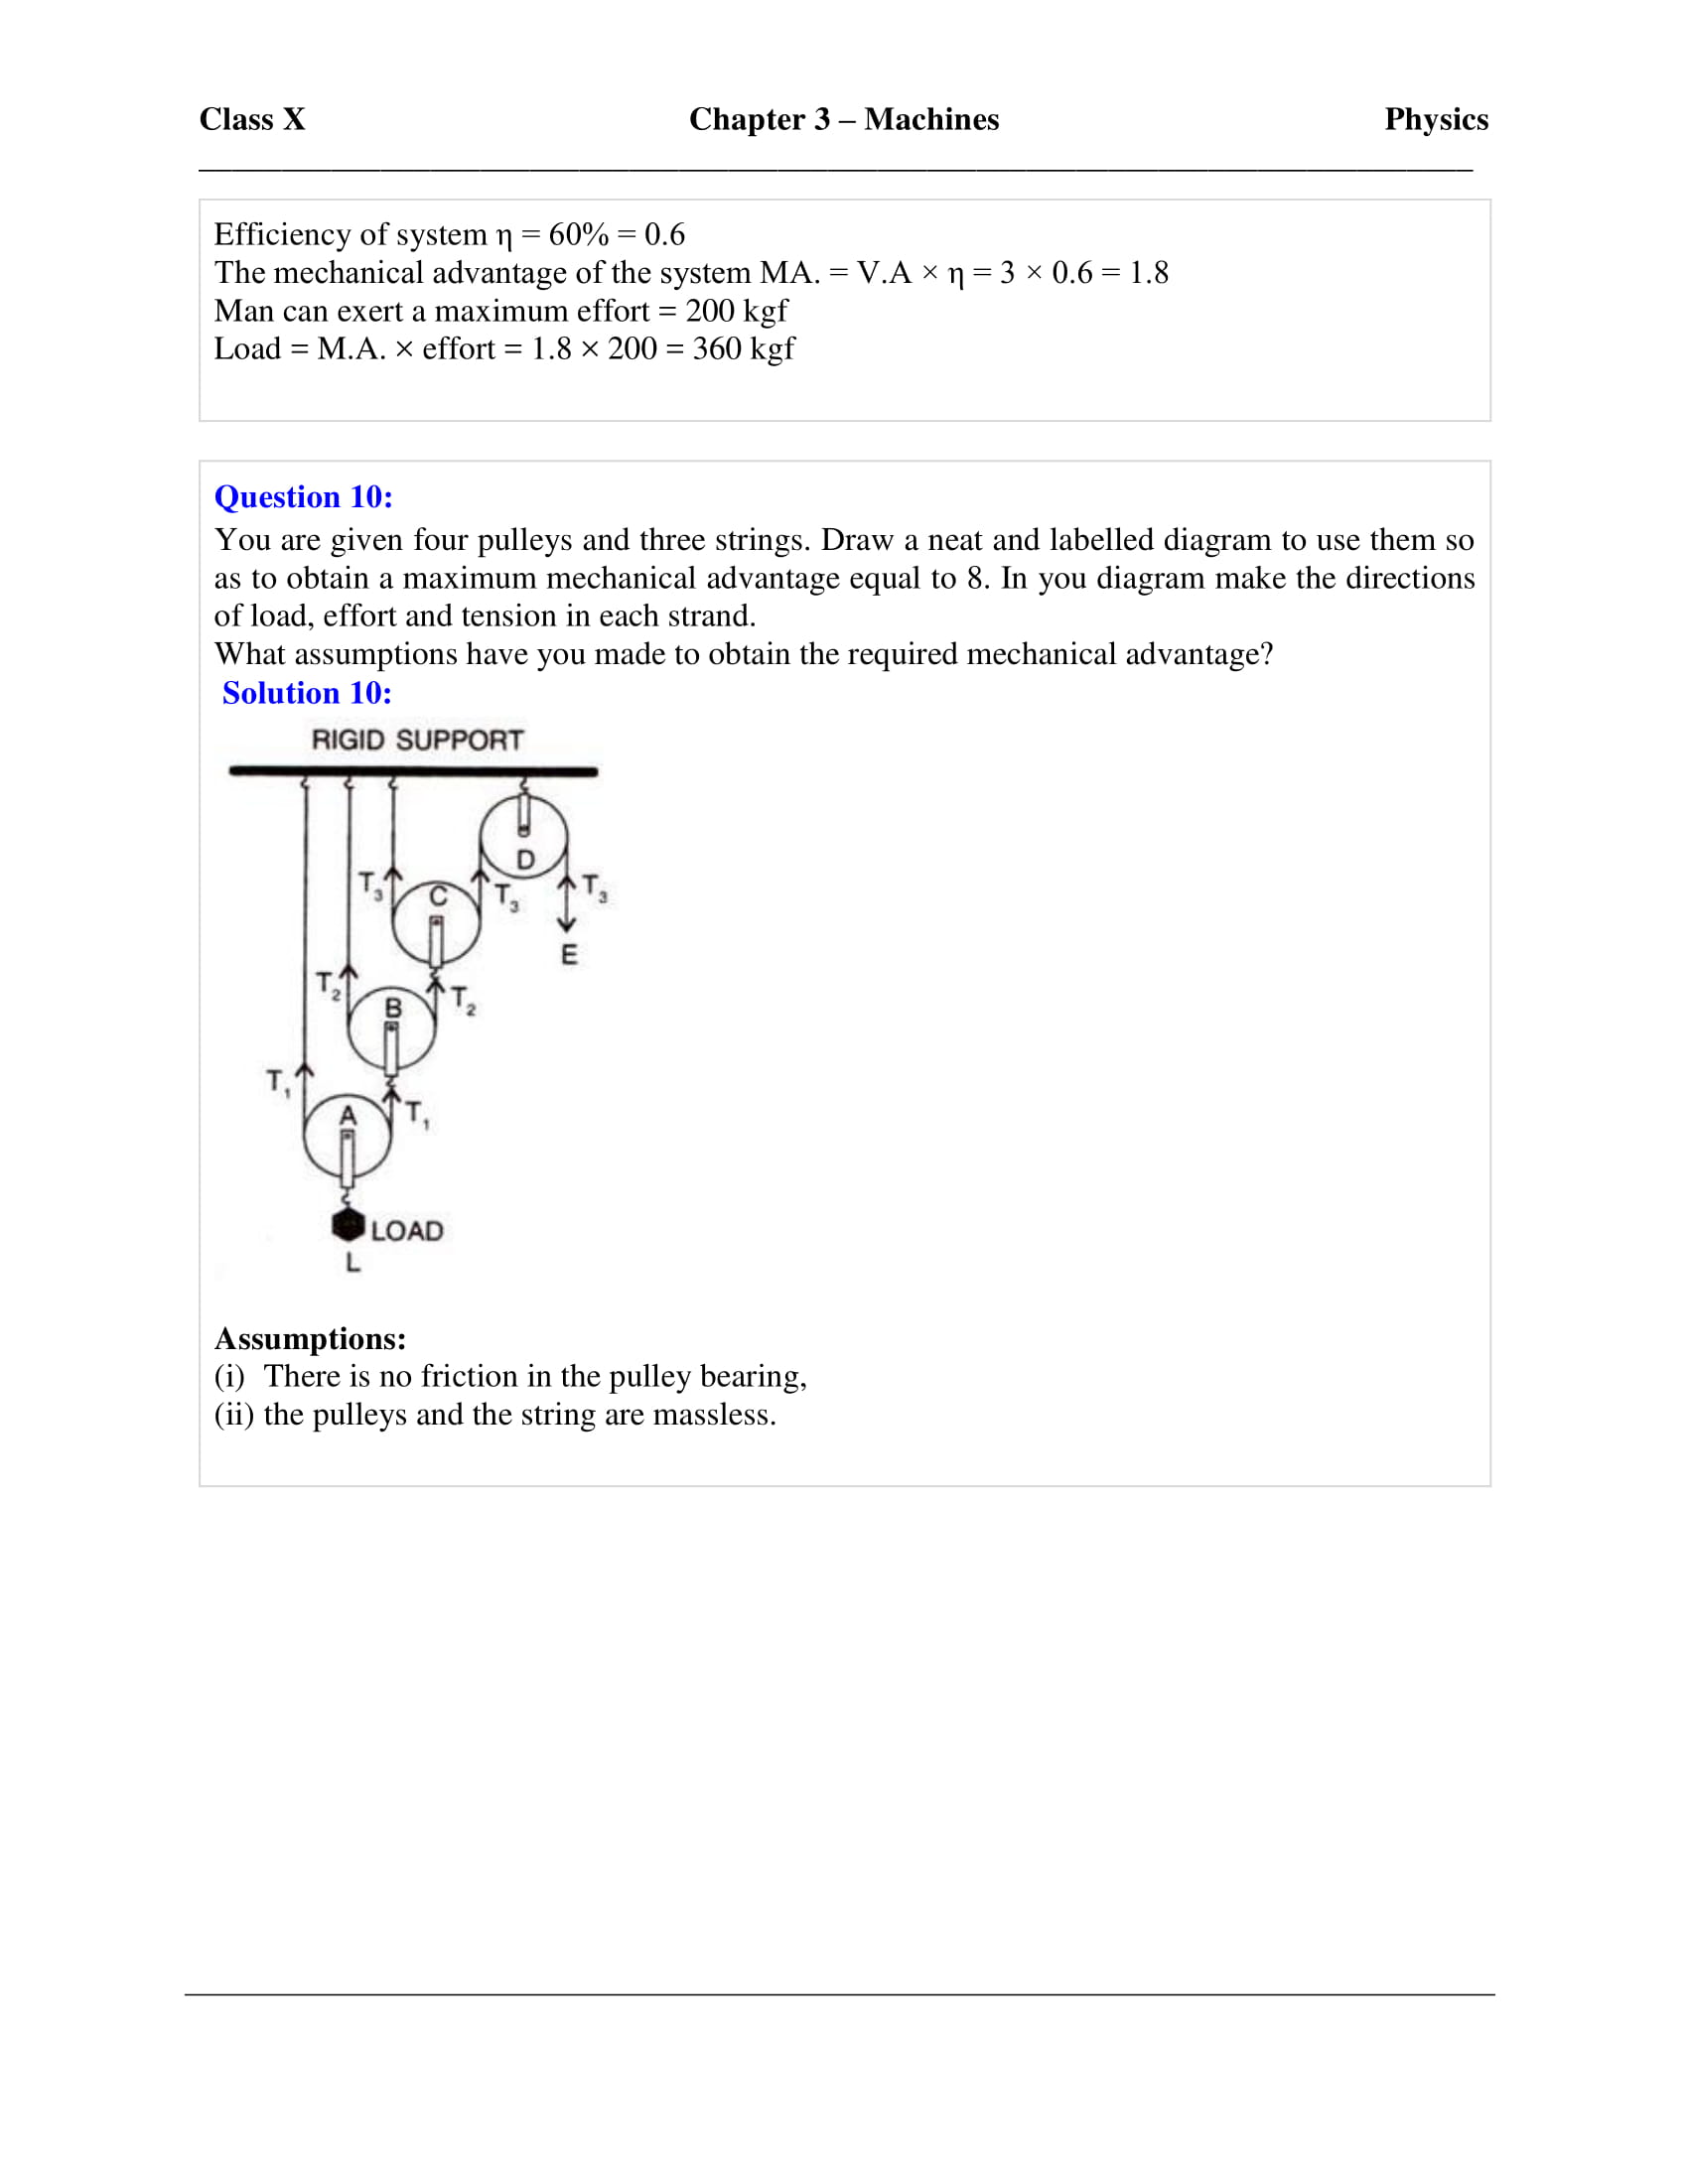 icse-selina-physics-solutions-class-10-chapter-3-machines-42